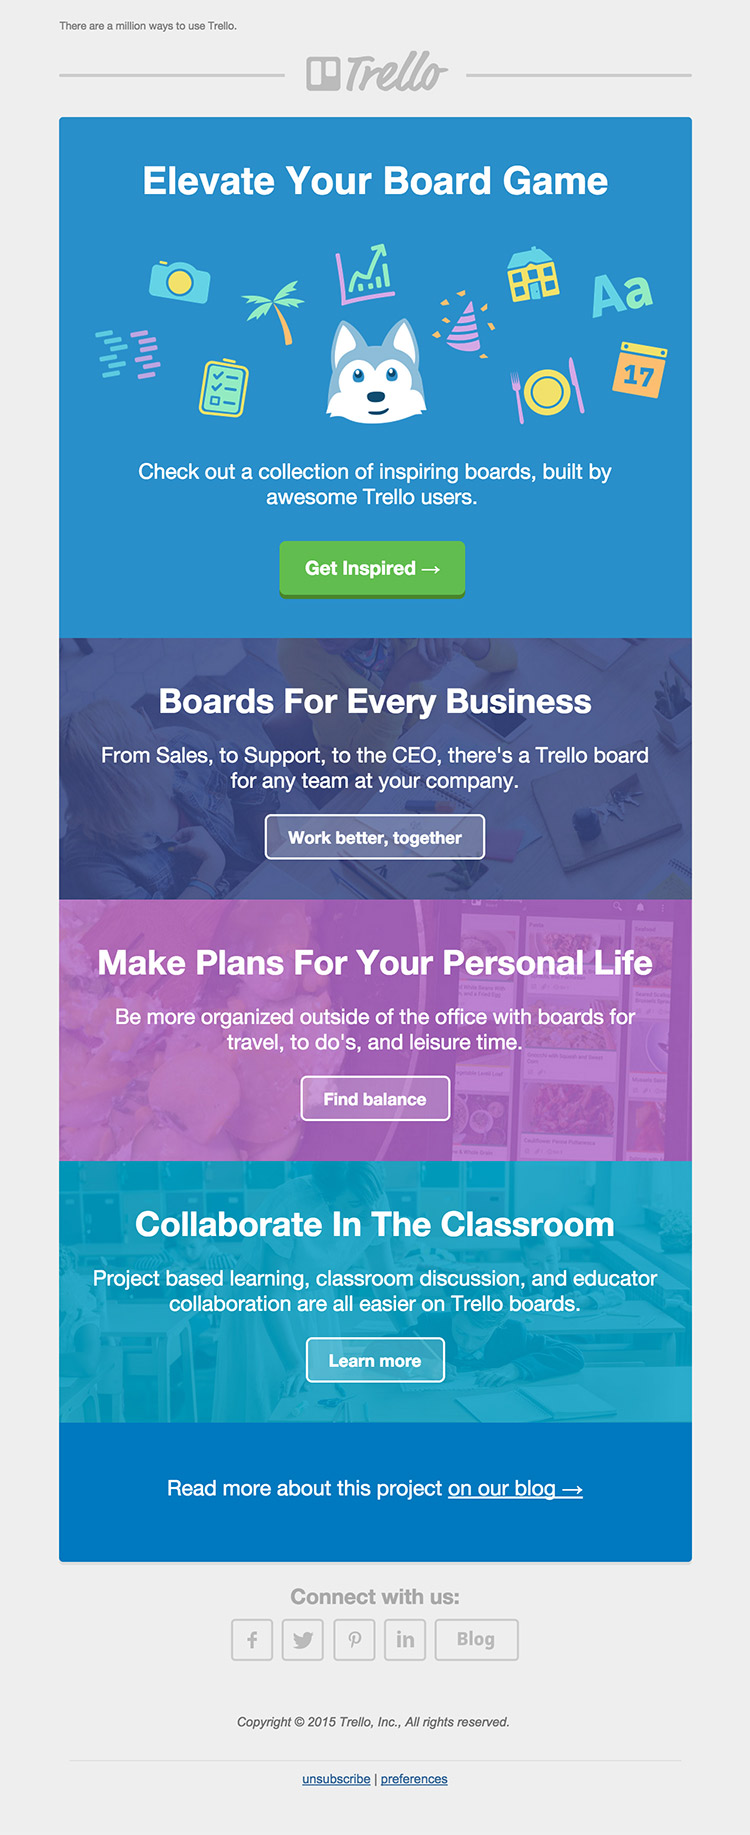 Trello - email newsletter templates - Tips from the pros